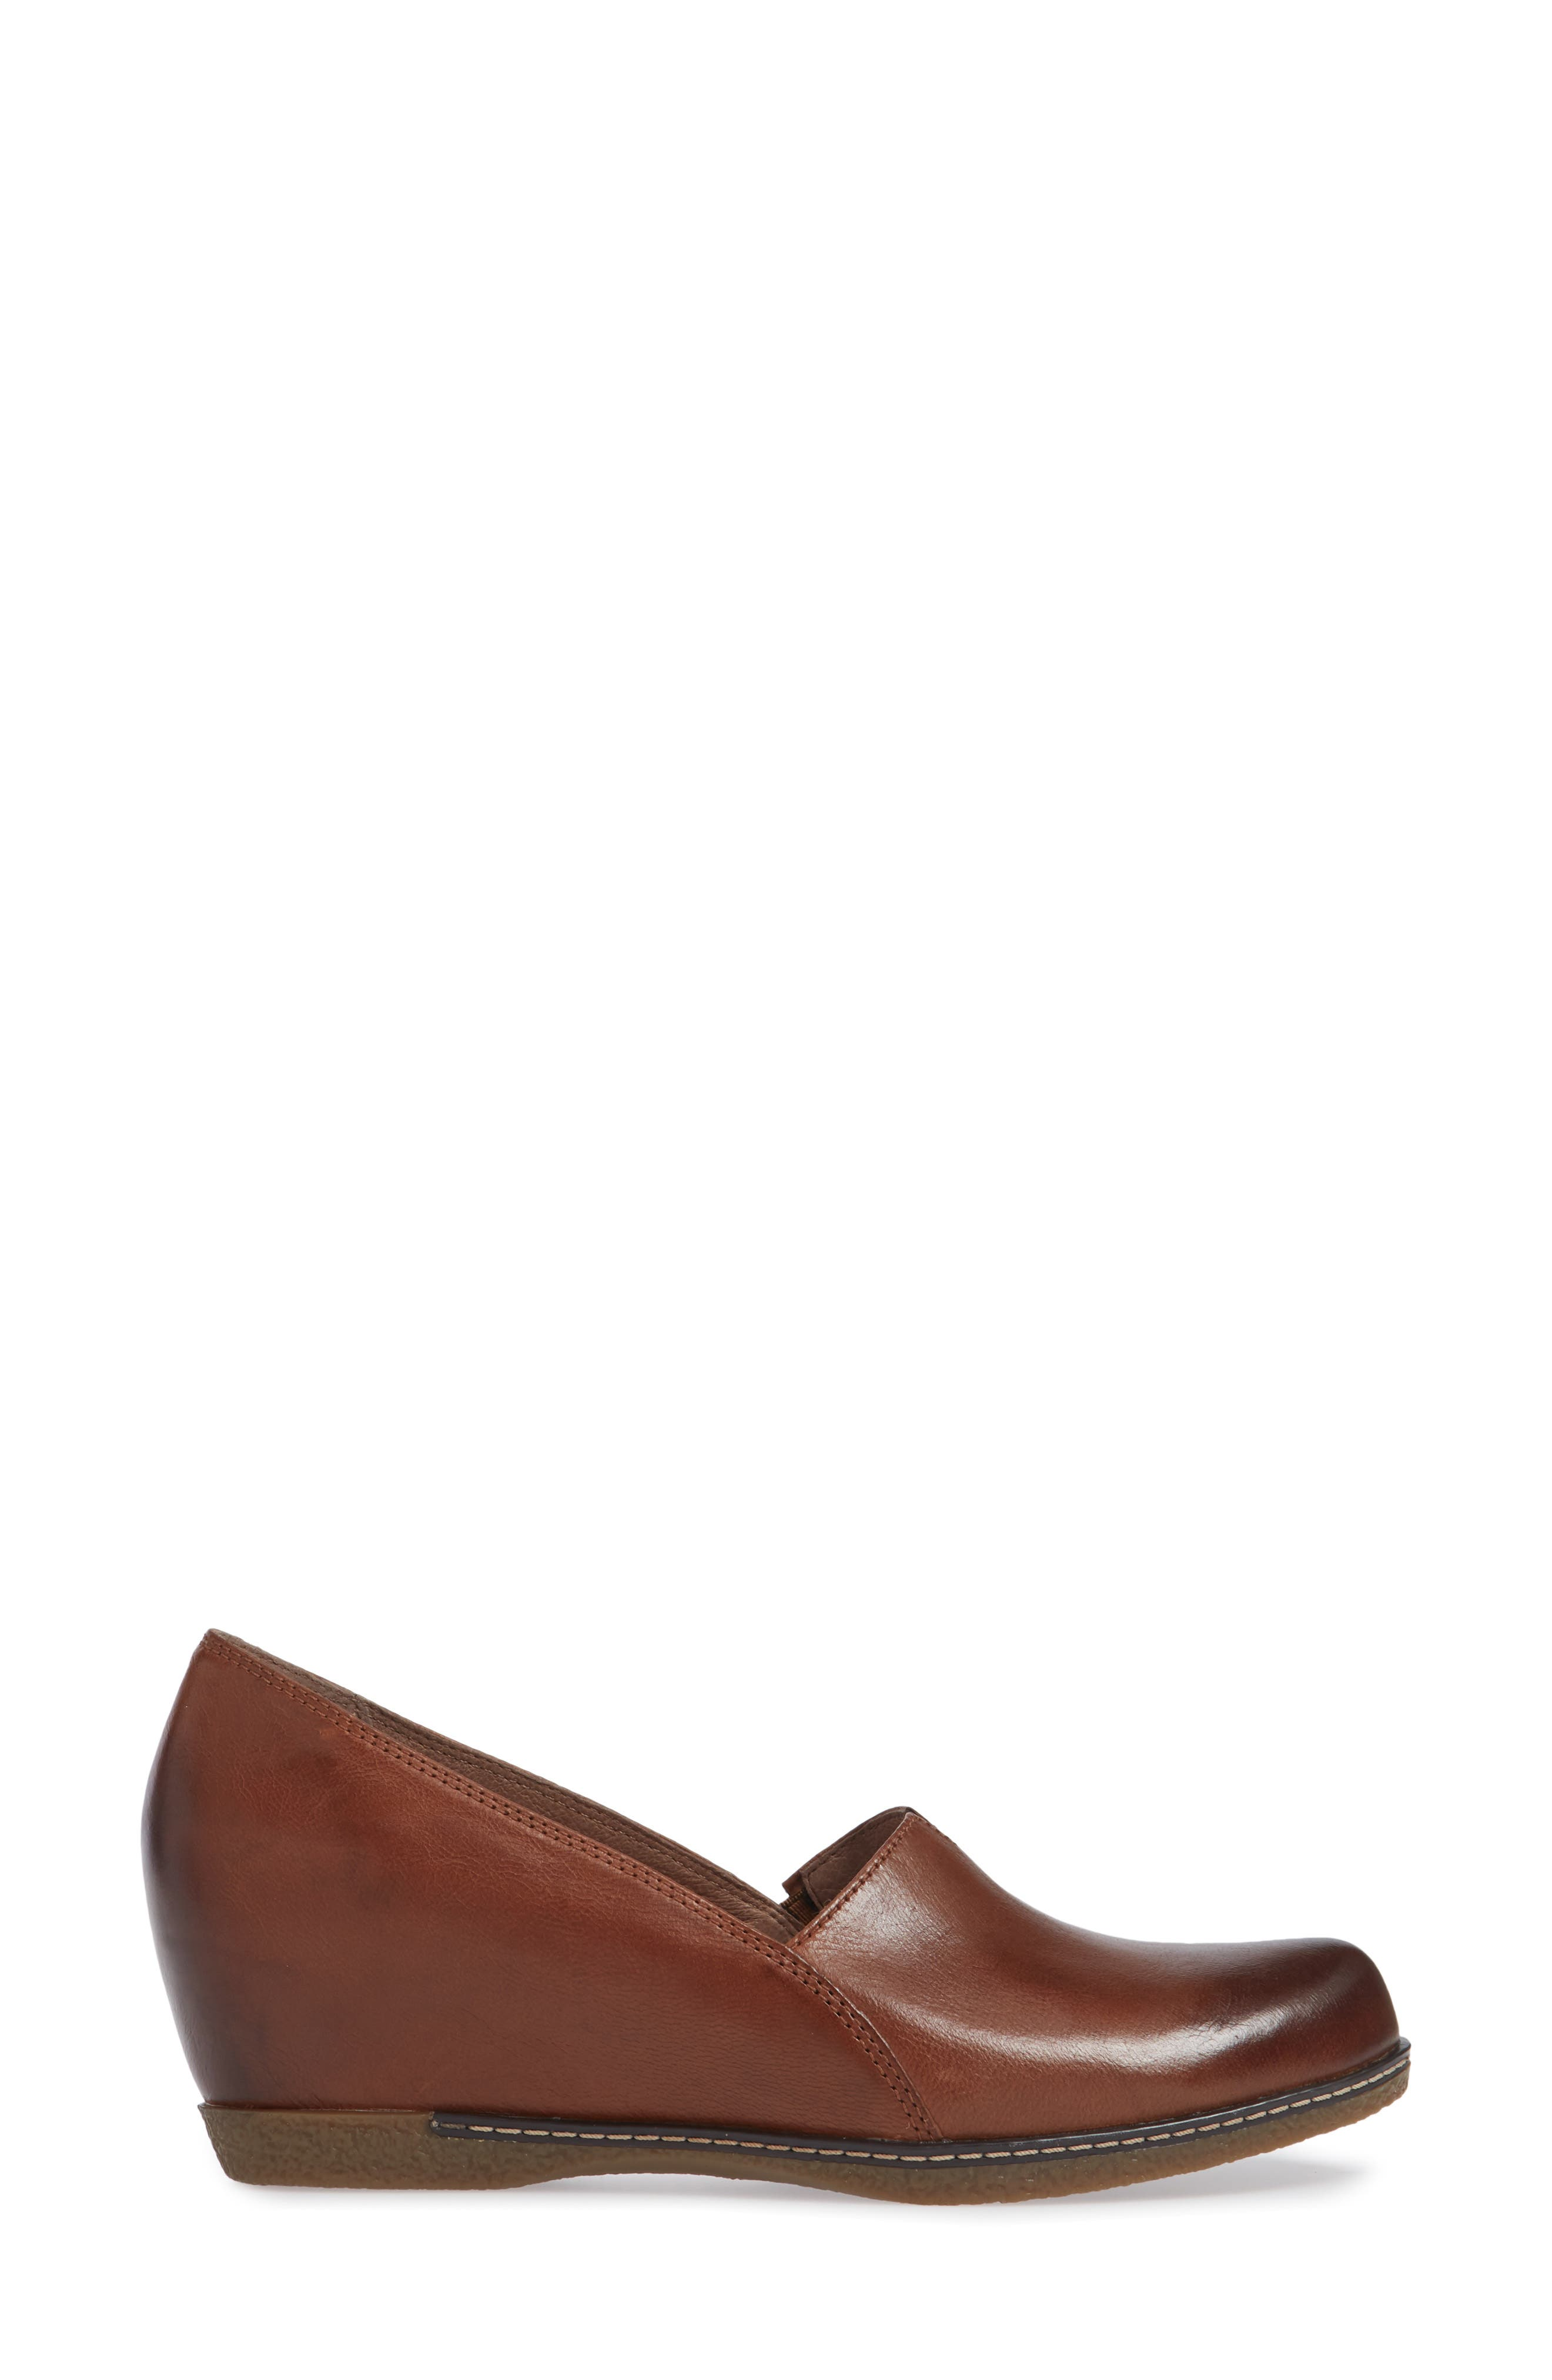 Liliana Concealed Wedge Slip-On,                             Alternate thumbnail 3, color,                             CHESTNUT BURNISHED LEATHER